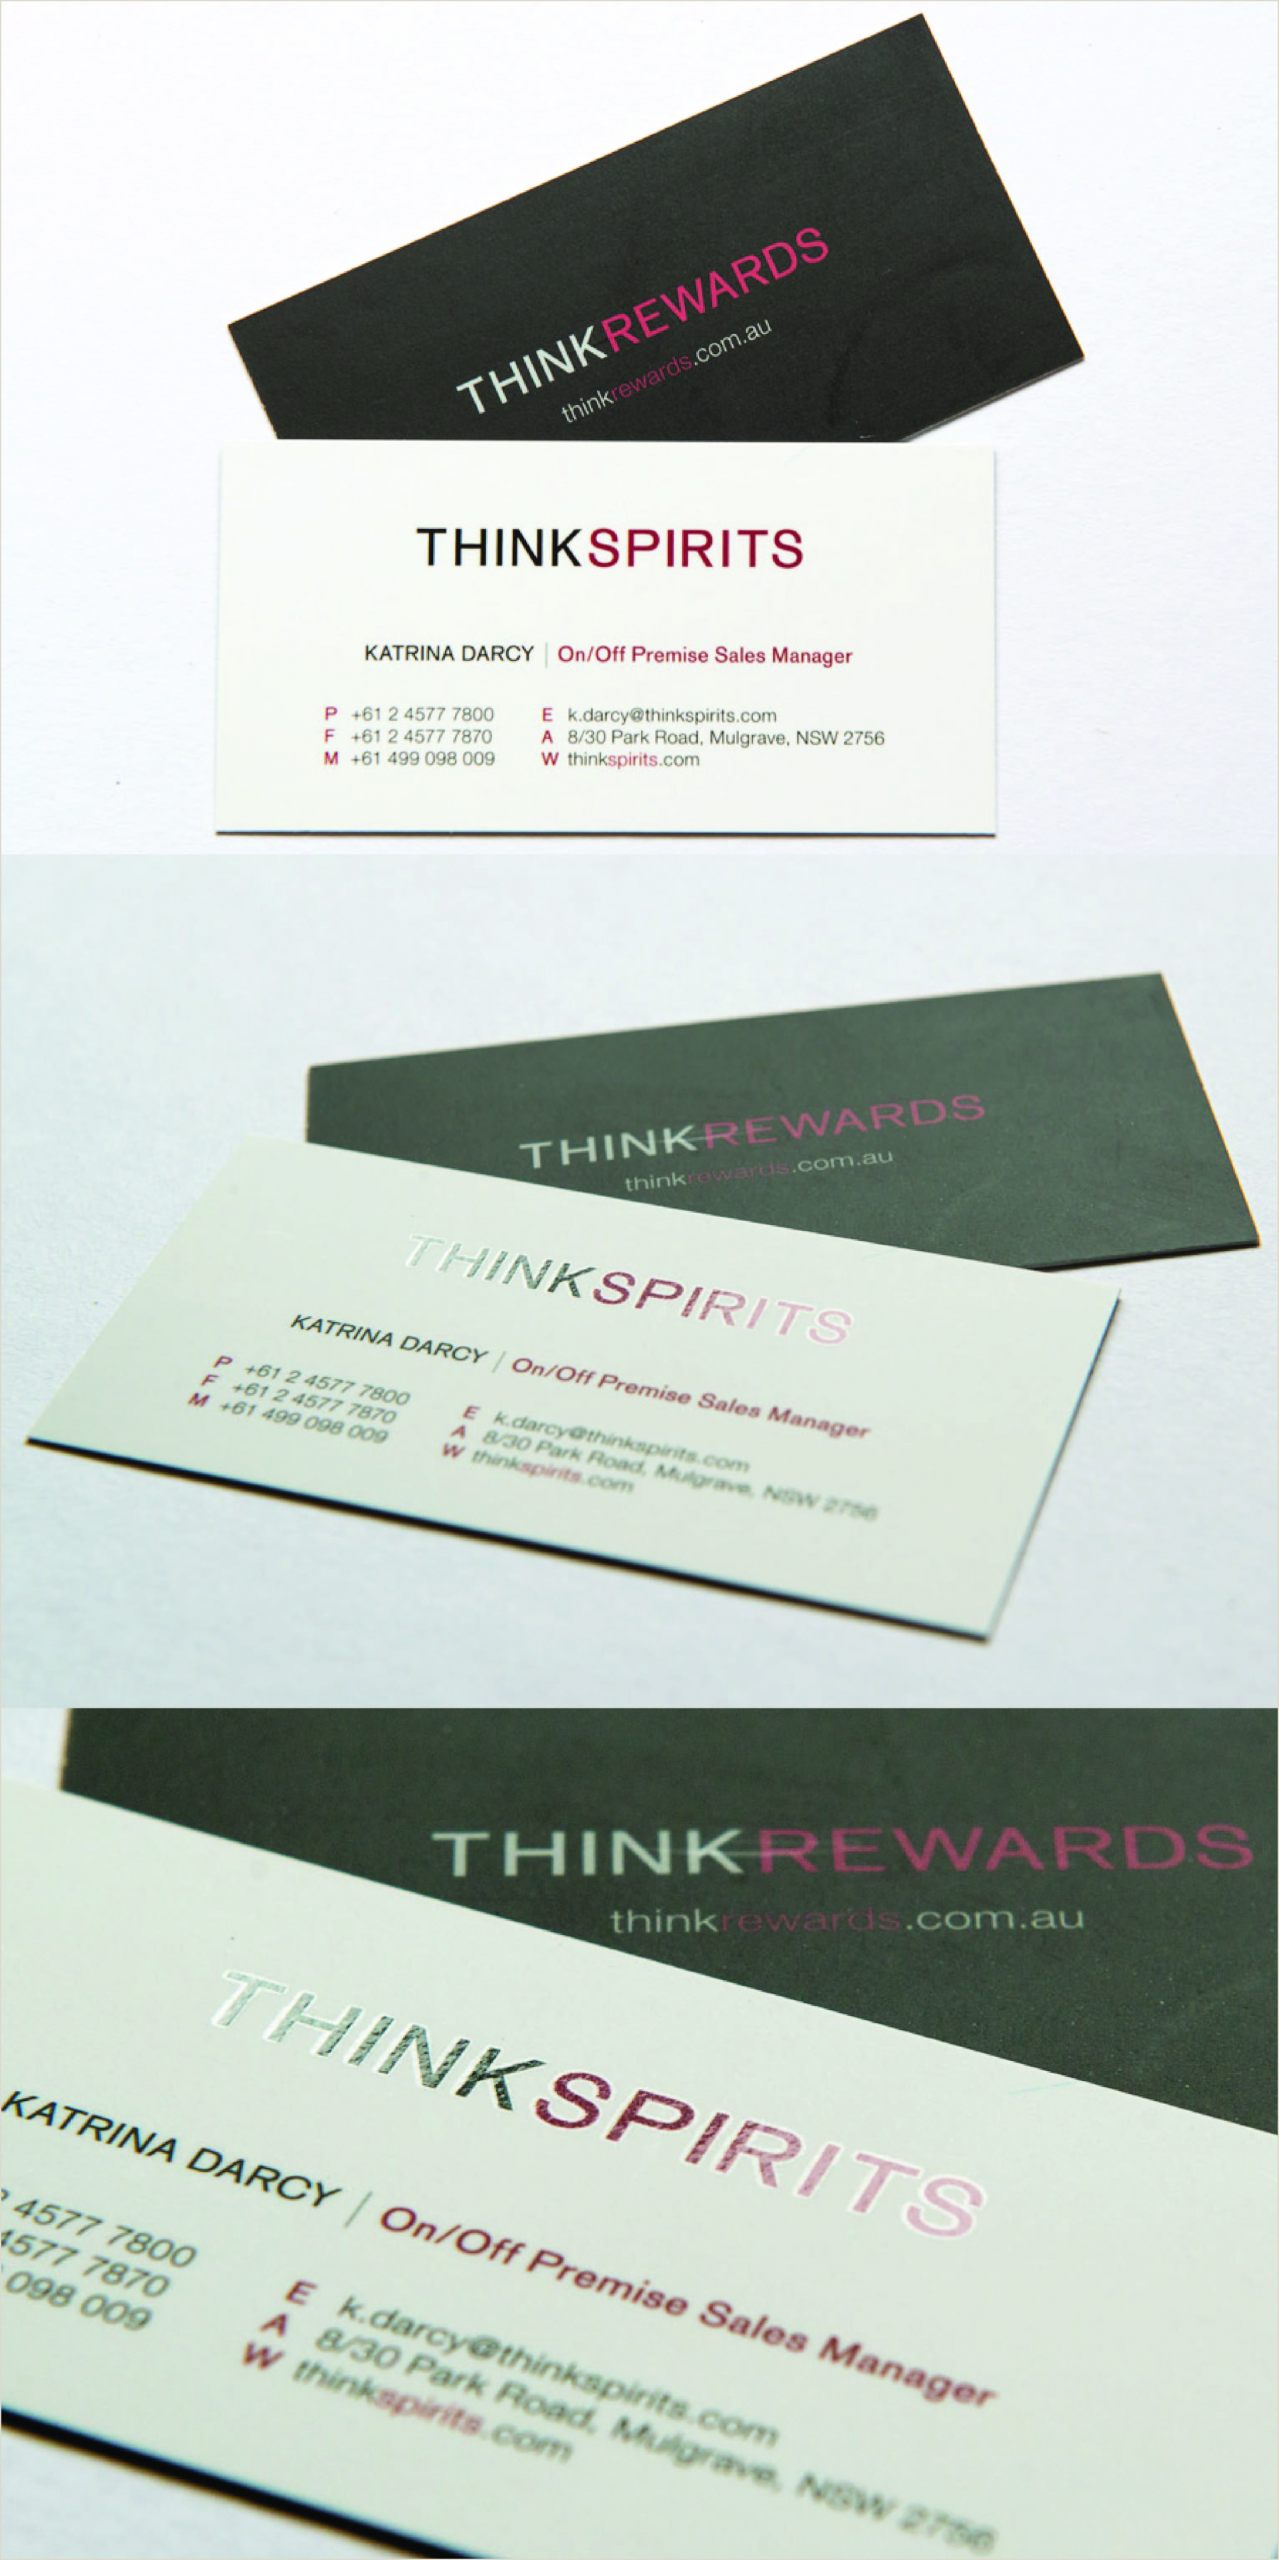 Business Card Cost The Economy Business Cards Are The Standard Choice Out Of